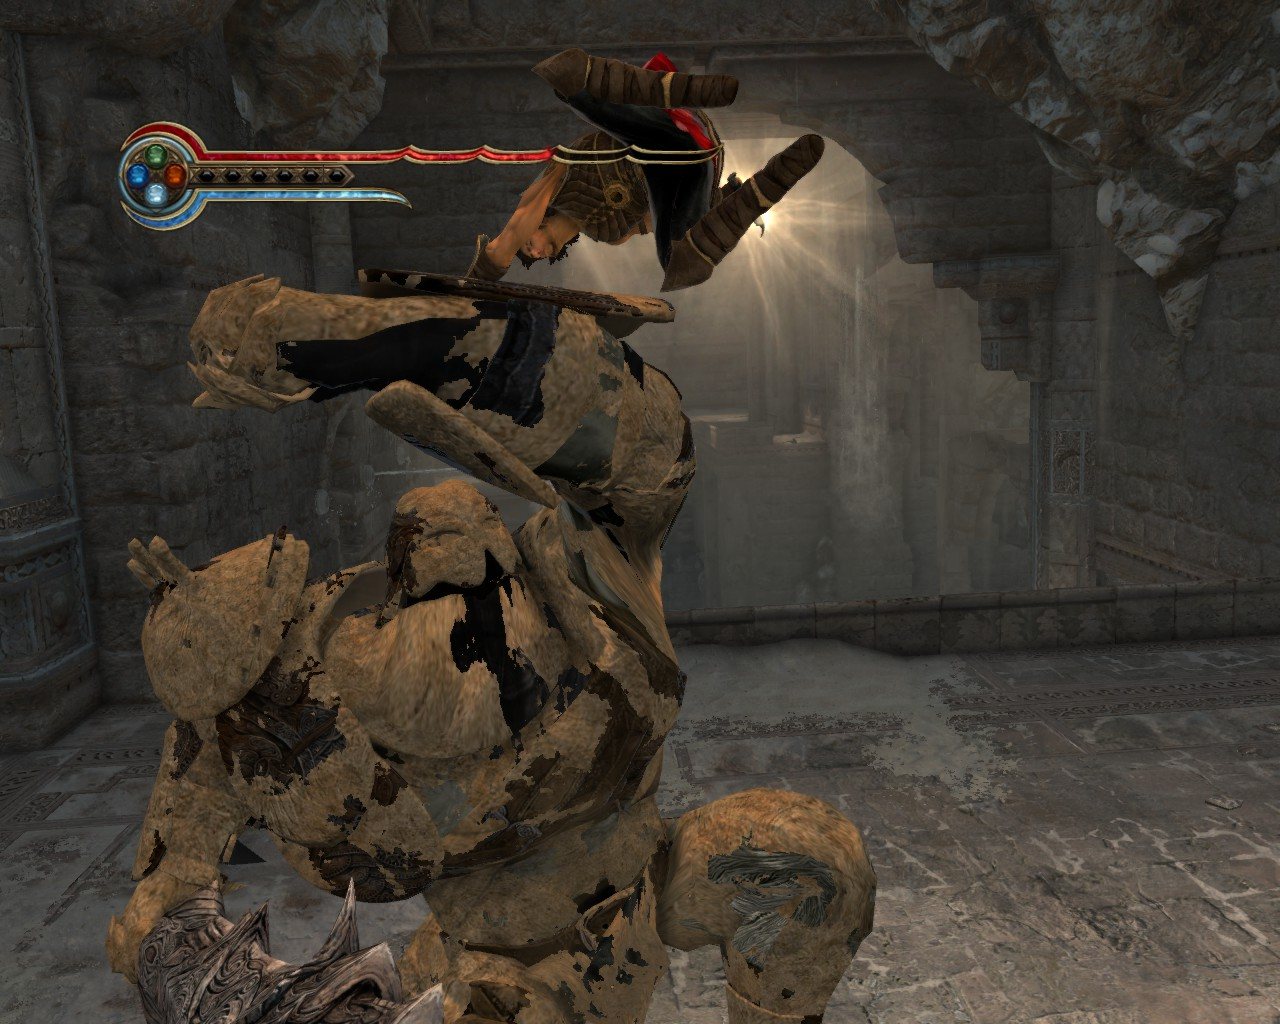 Prince of Persia 2014-06-04 19-17-08-19.jpg - Prince of Persia: The Forgotten Sands